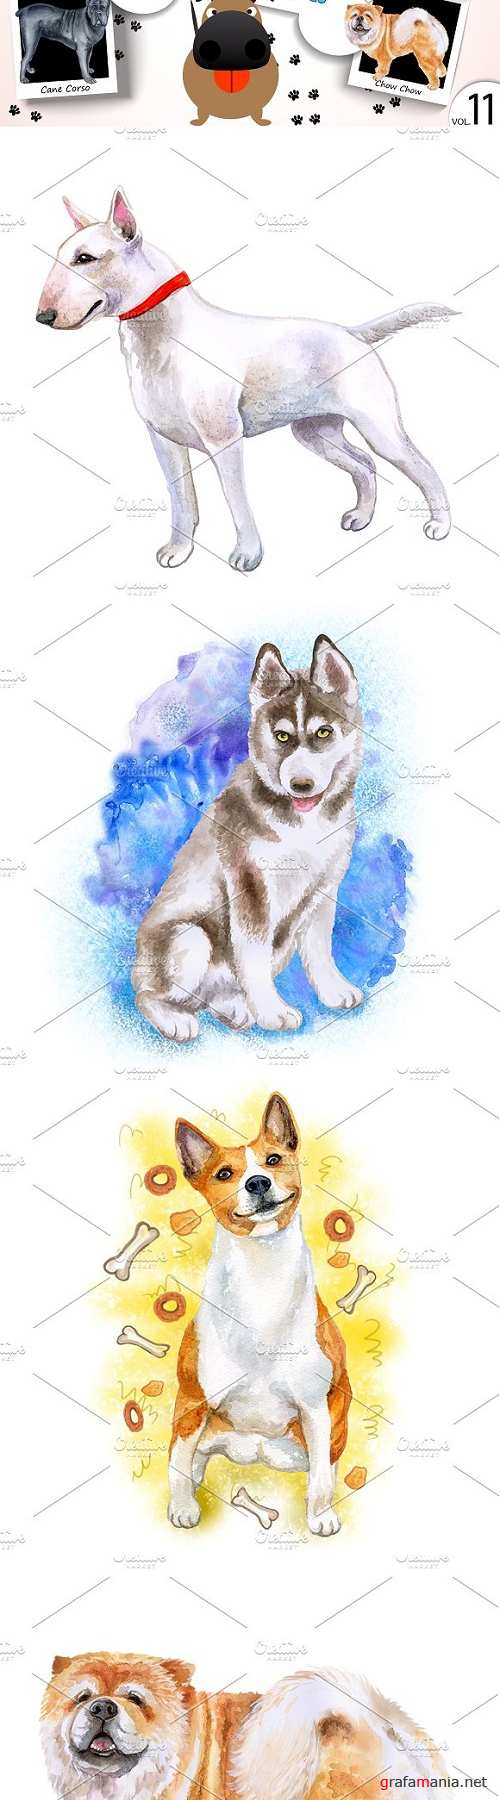 Watercolor Dogs - Collection 11 of 12 - 1838651